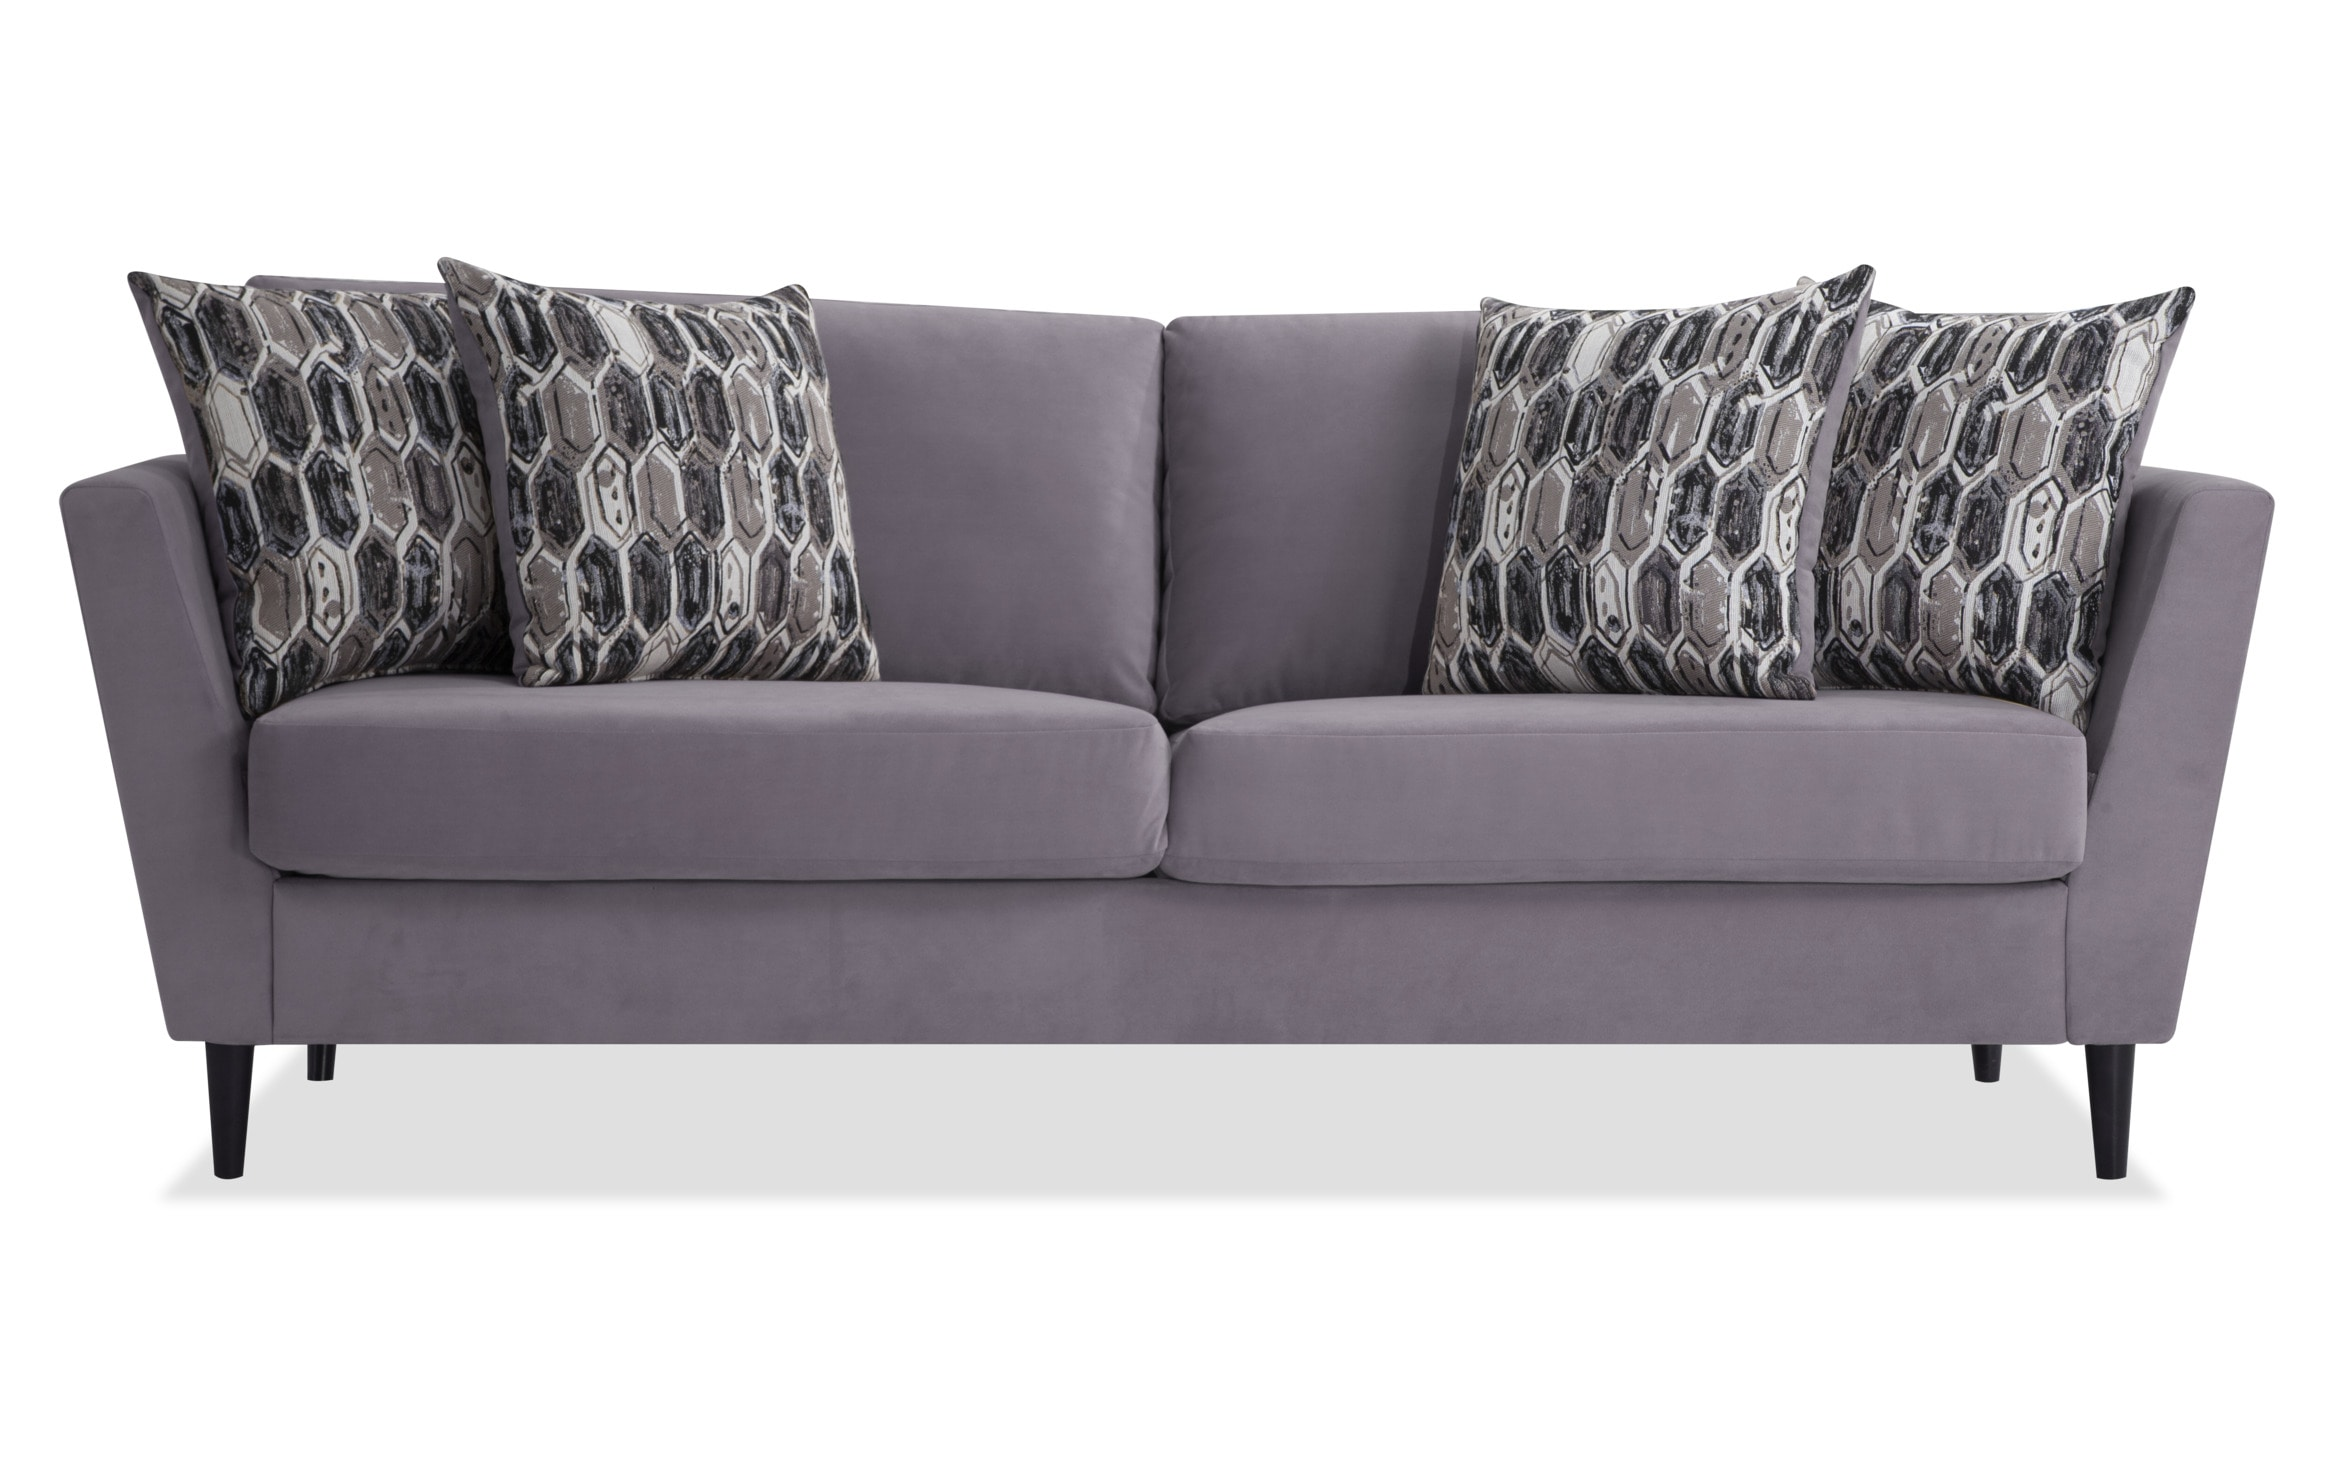 Hayden Gray Sofa | Outlet | Bobs.com